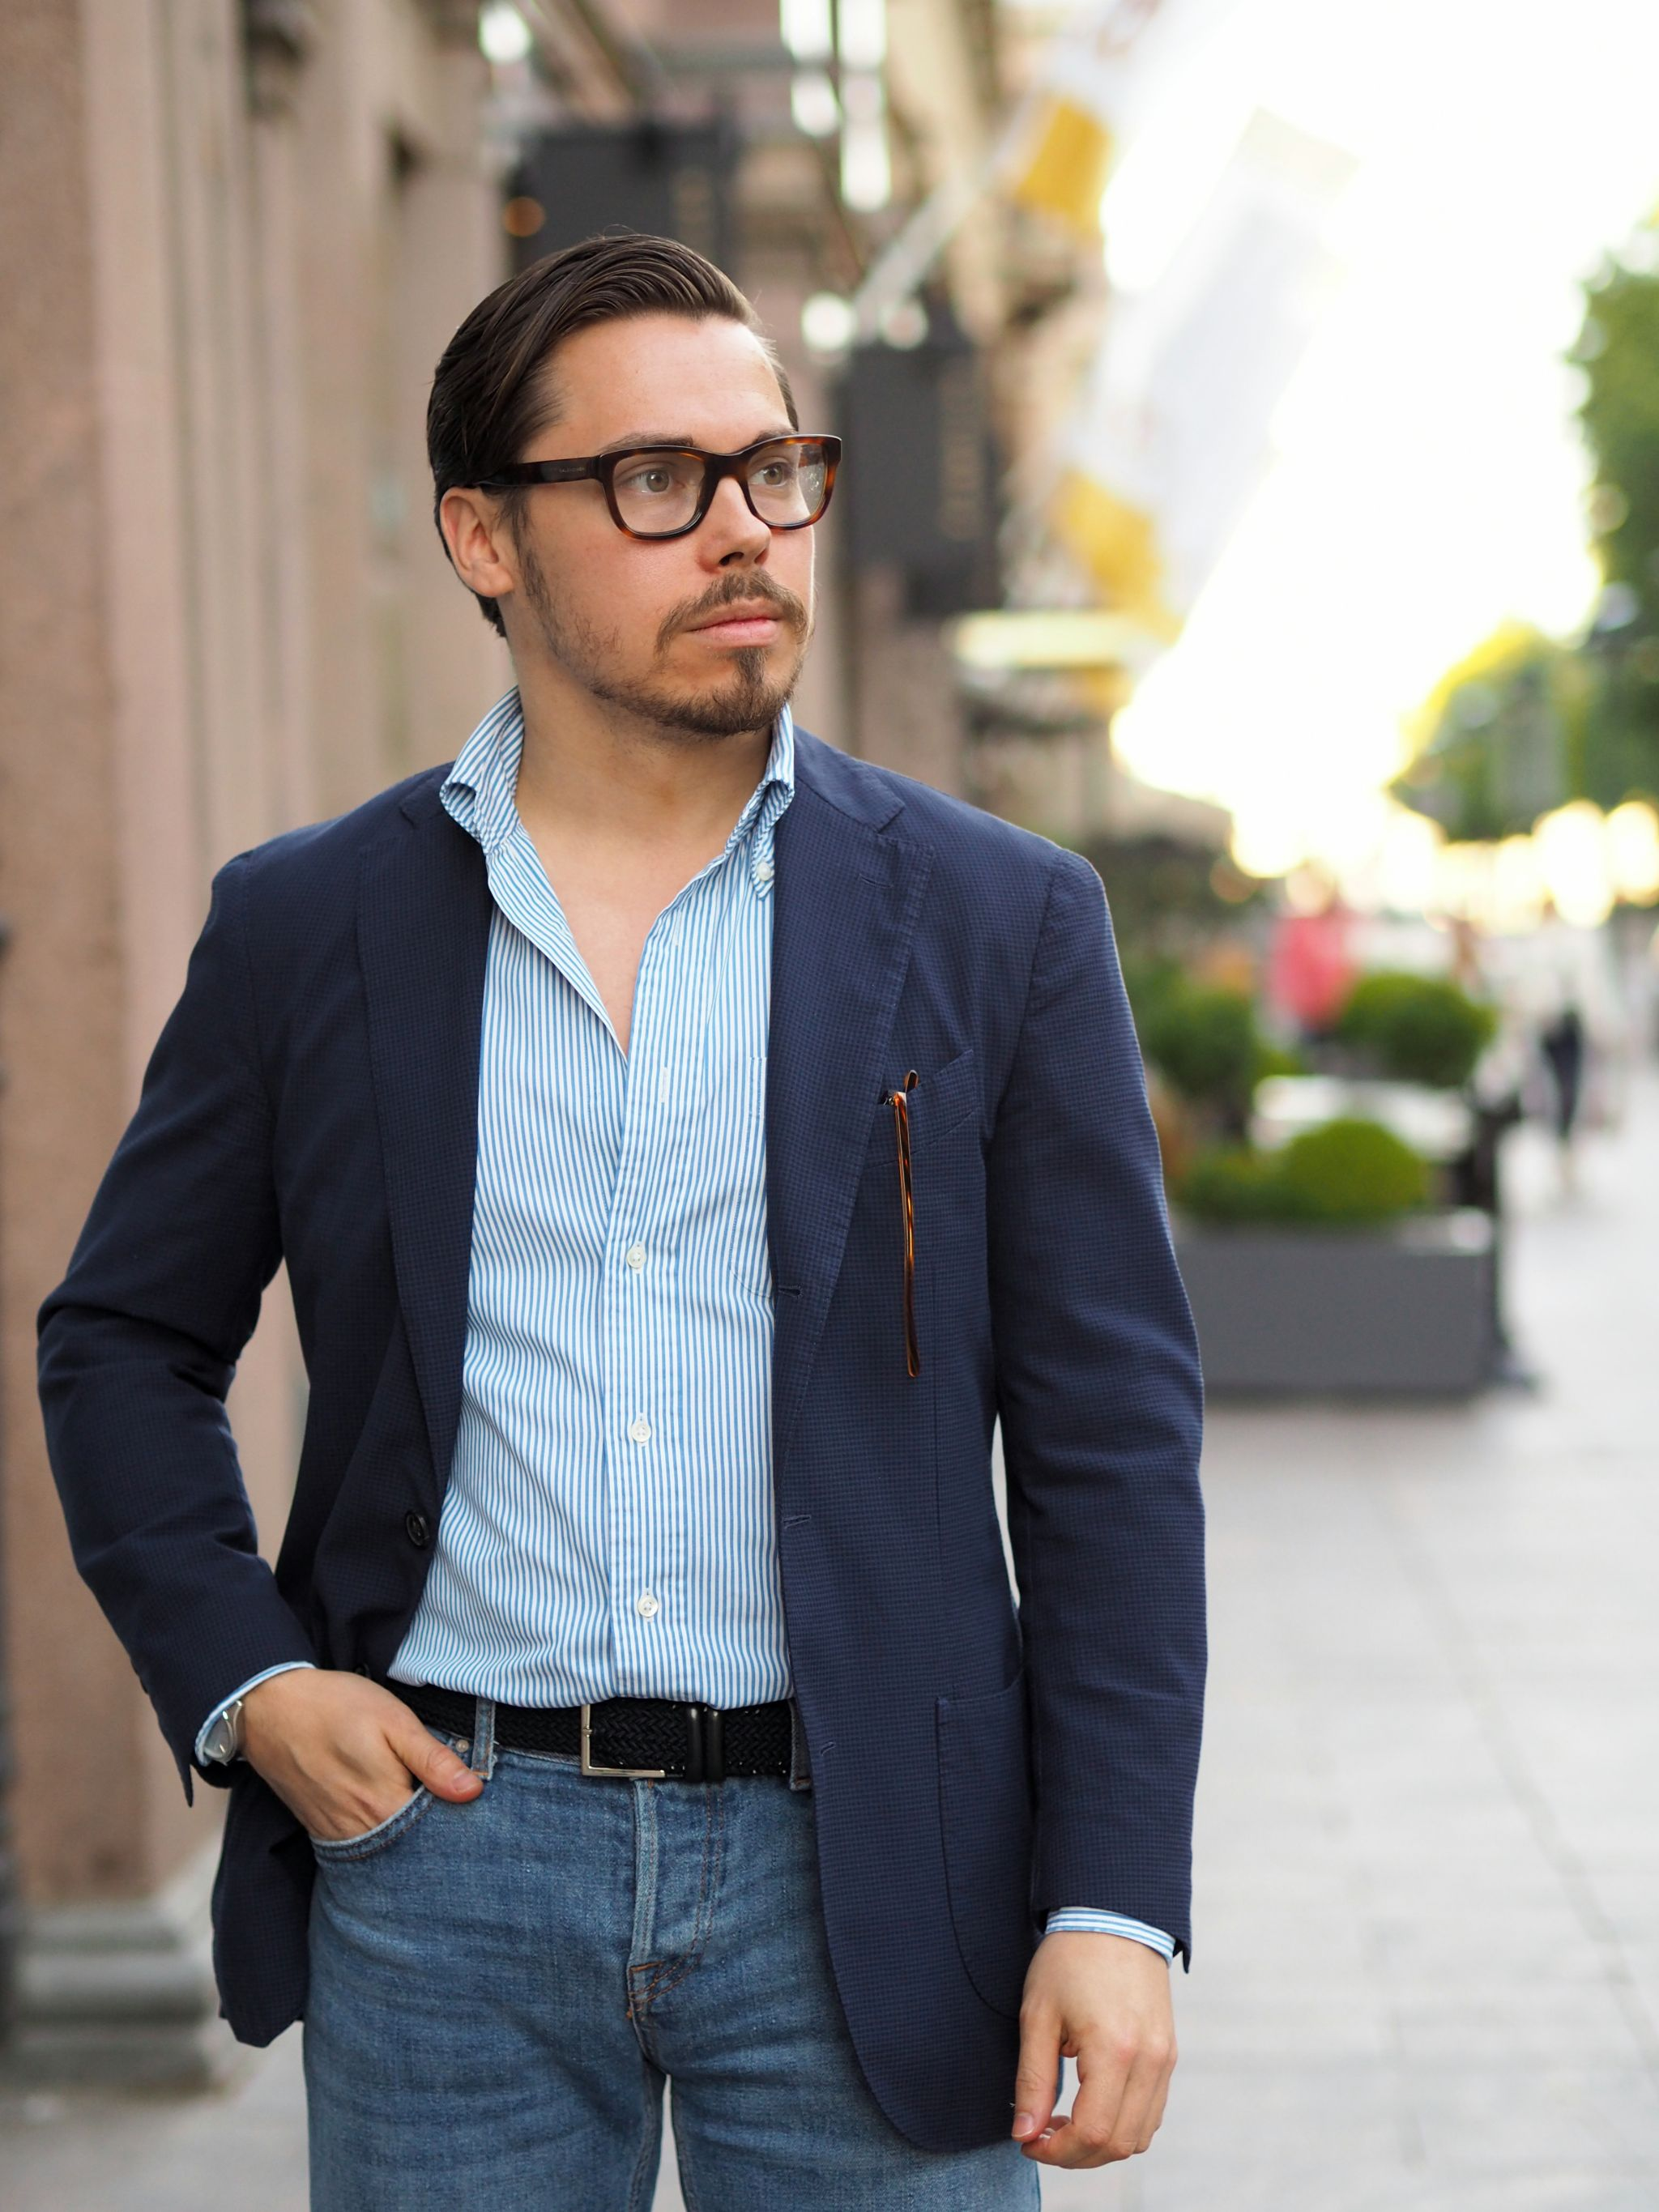 Navy blue sport coat with jeans - simple and casual